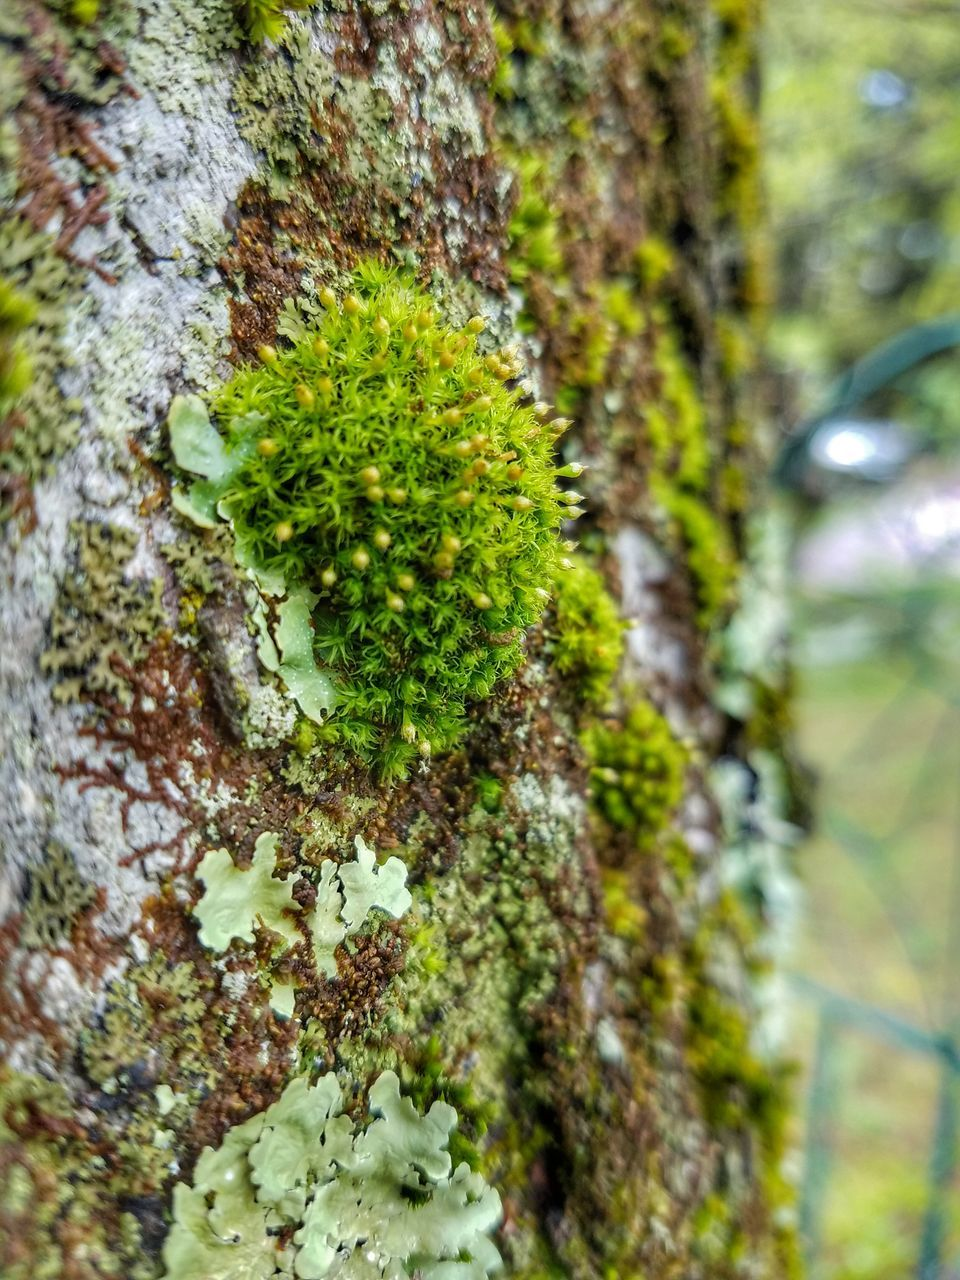 growth, nature, moss, lichen, plant, no people, tree trunk, green color, day, close-up, outdoors, beauty in nature, tree, fungus